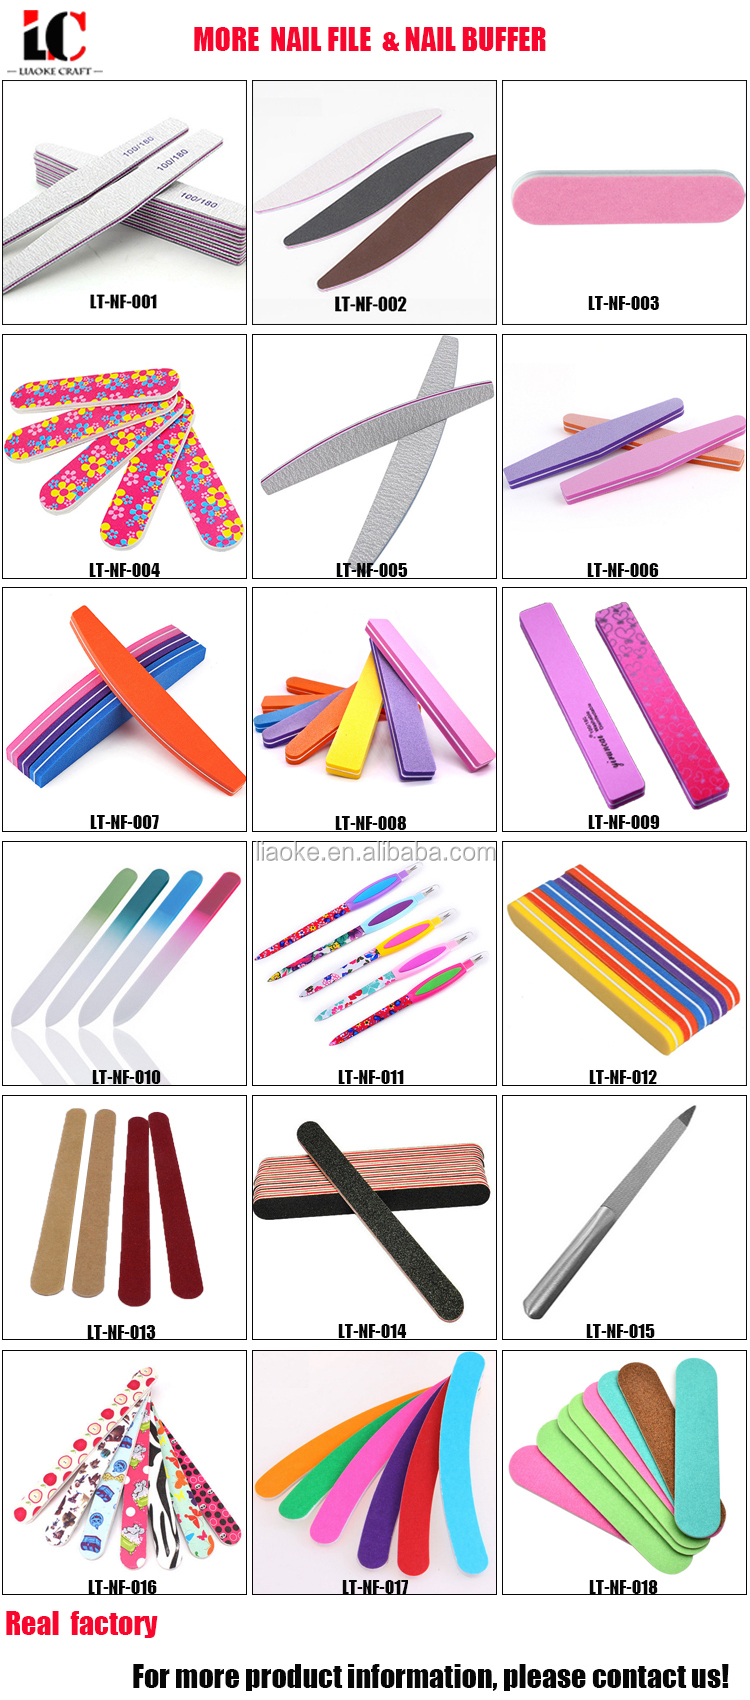 nail file and nail buffer 1.jpg